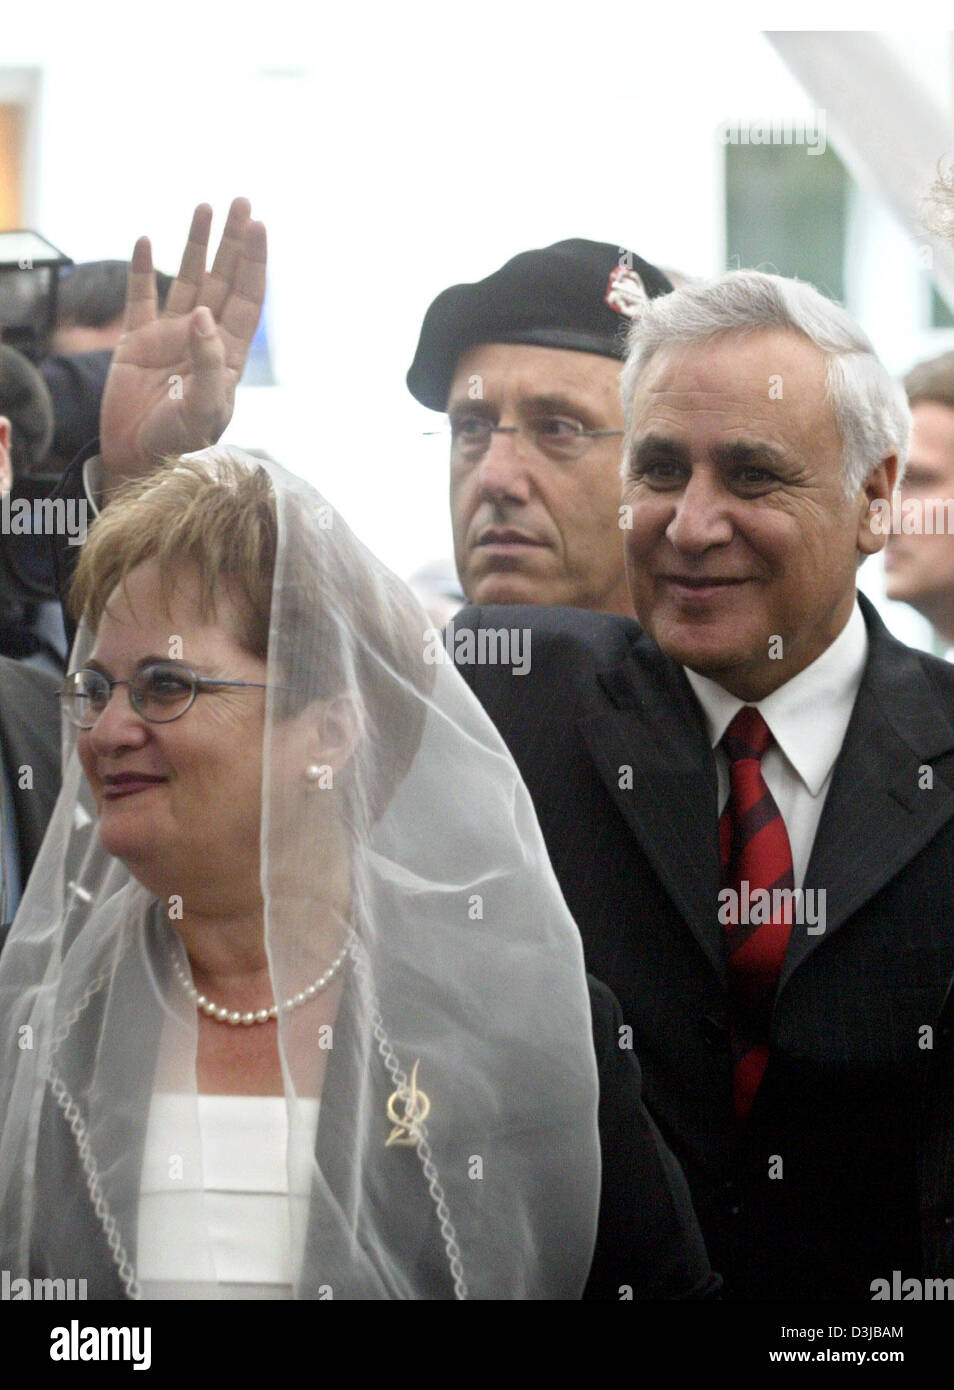 The Israeli President Moshe Katsav and his wife wave at a group of school children at the cemetary Große Hamburger - Stock Image